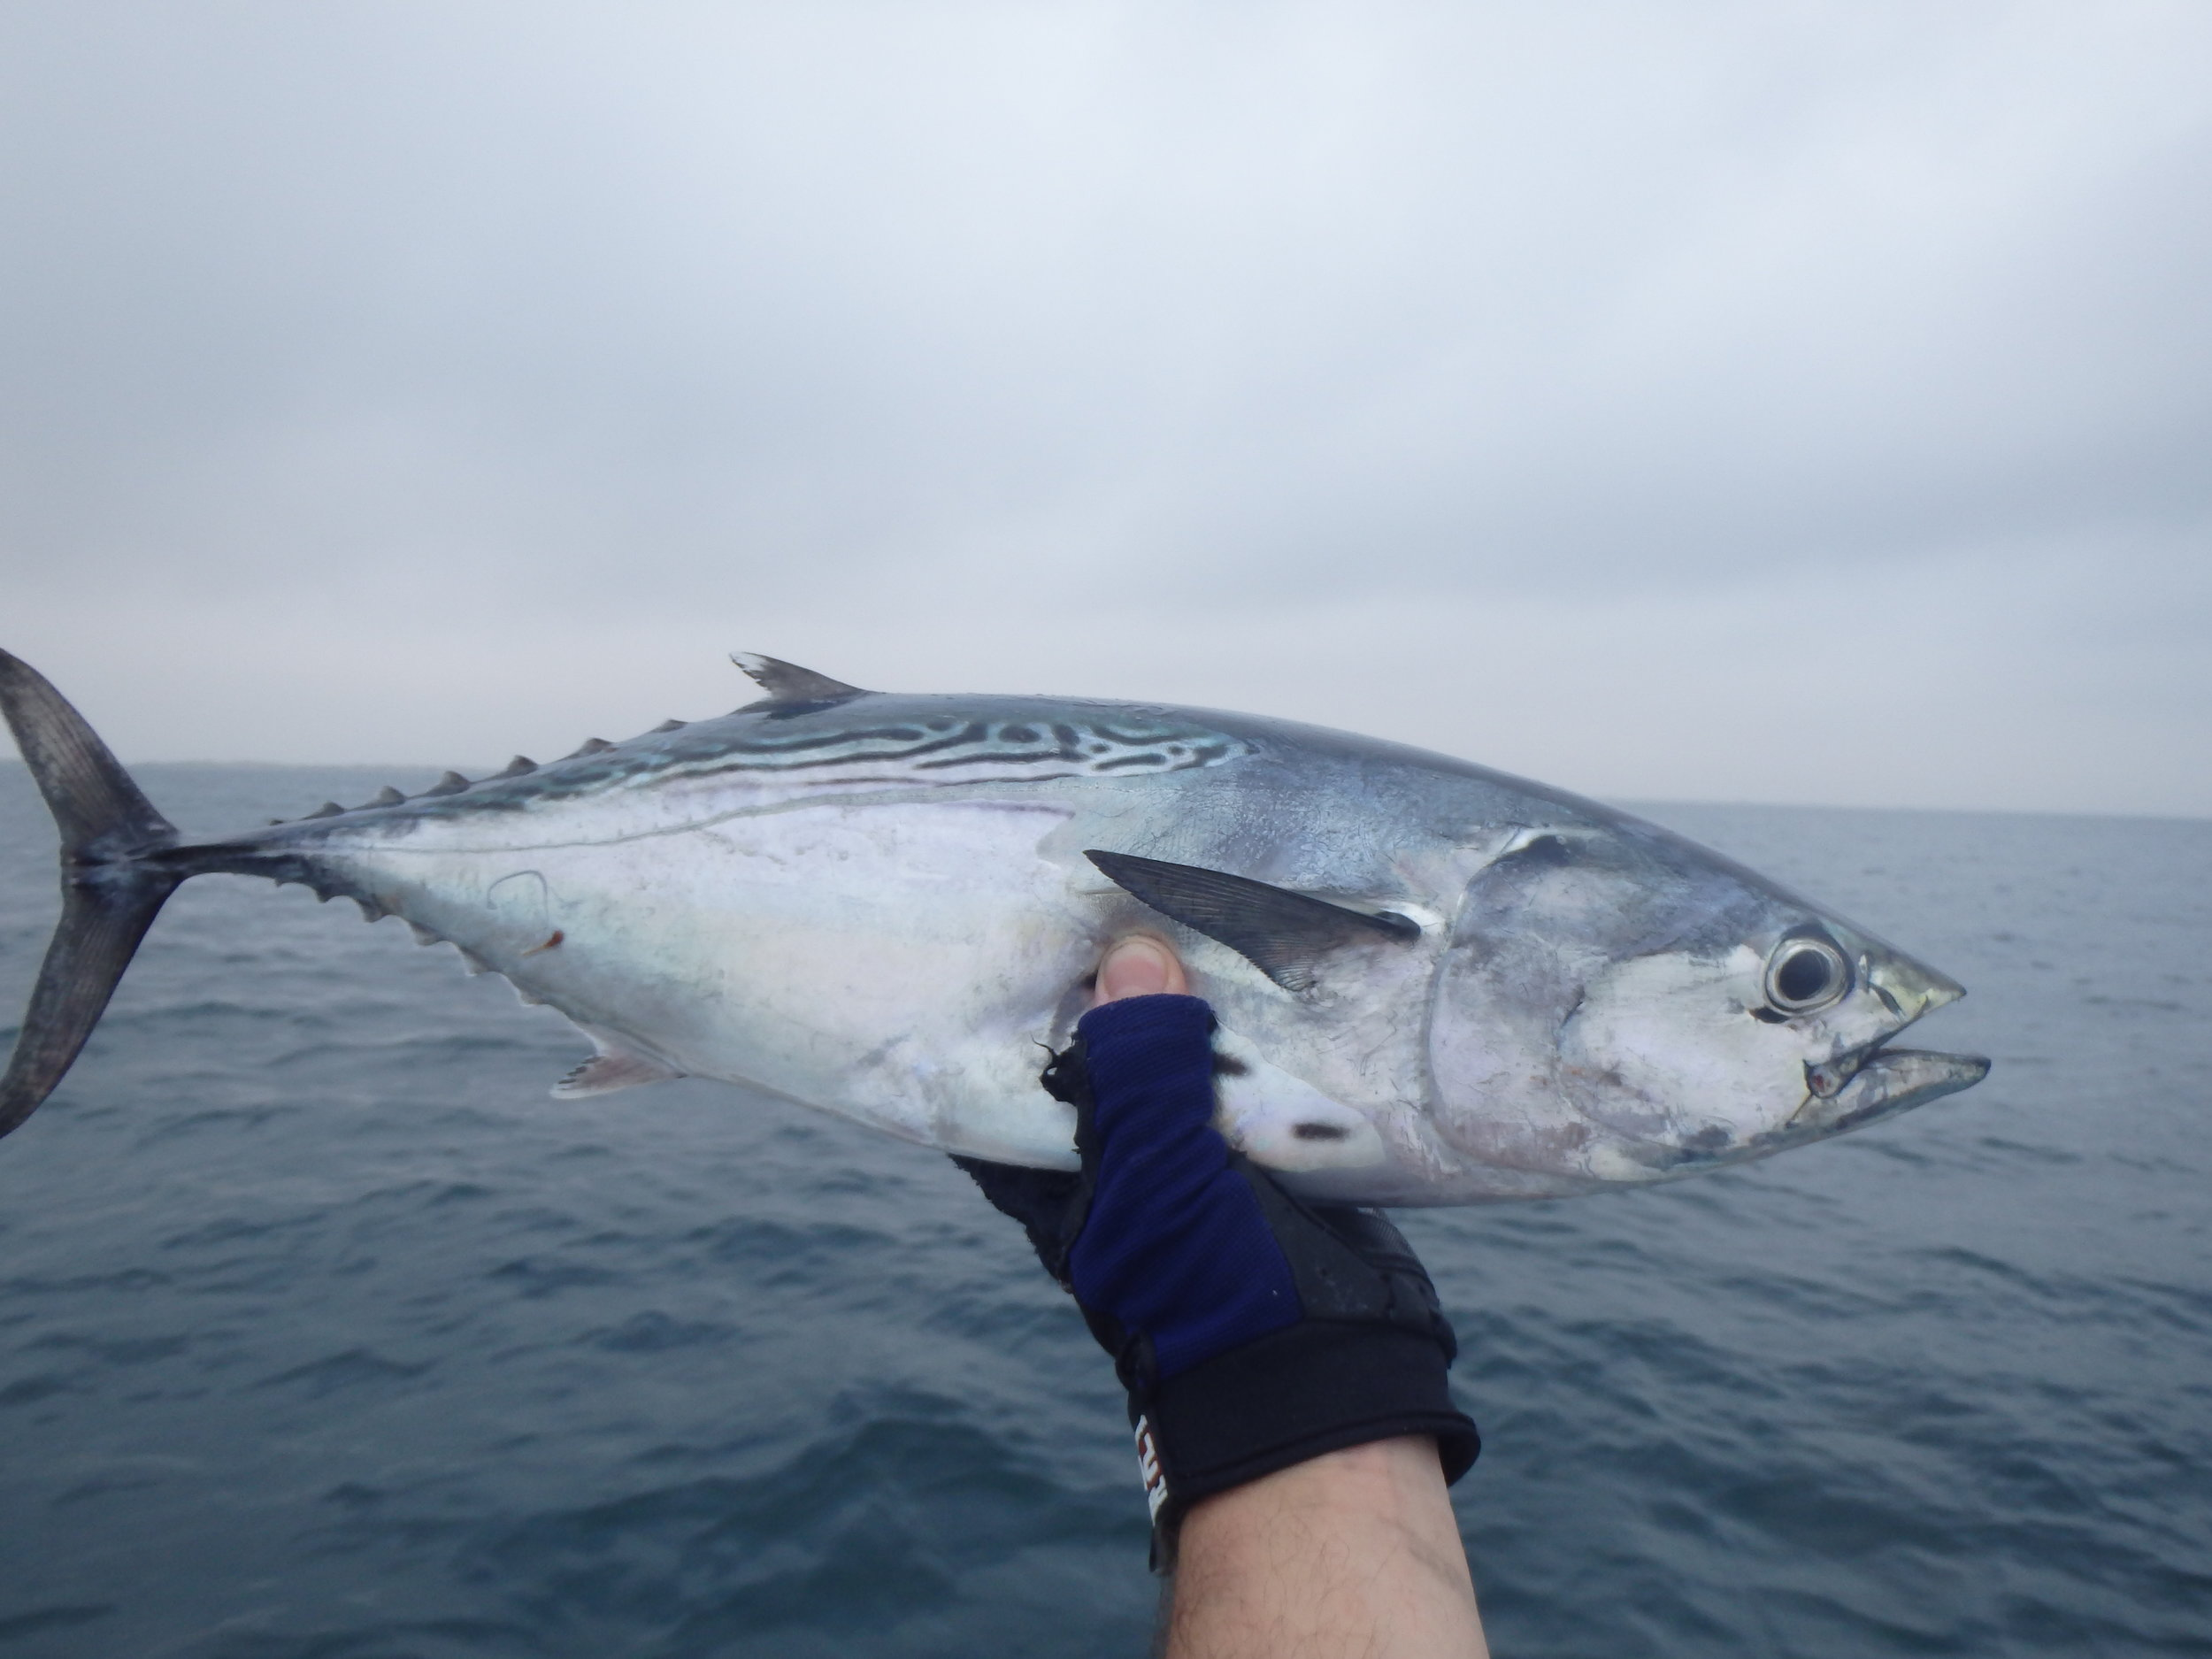 Chasing Bonita offshore in March with lures